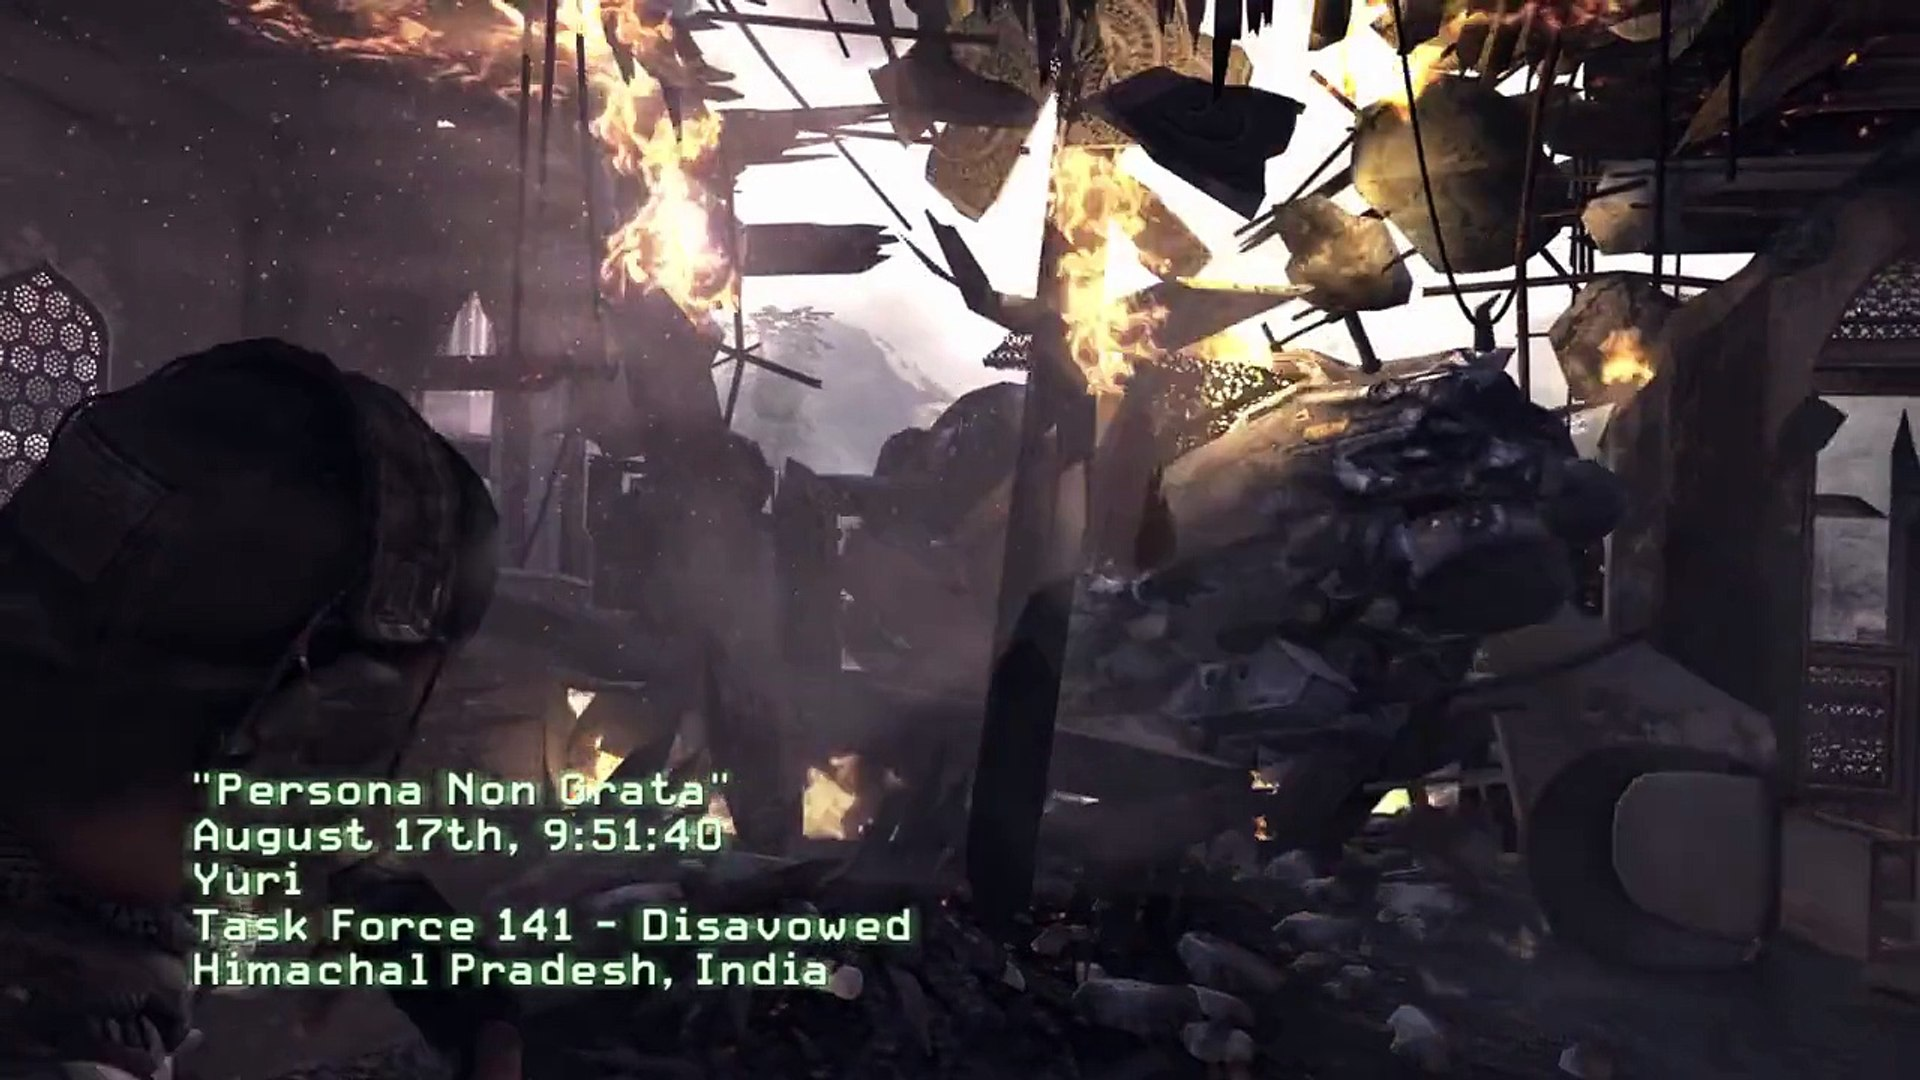 video games based in India